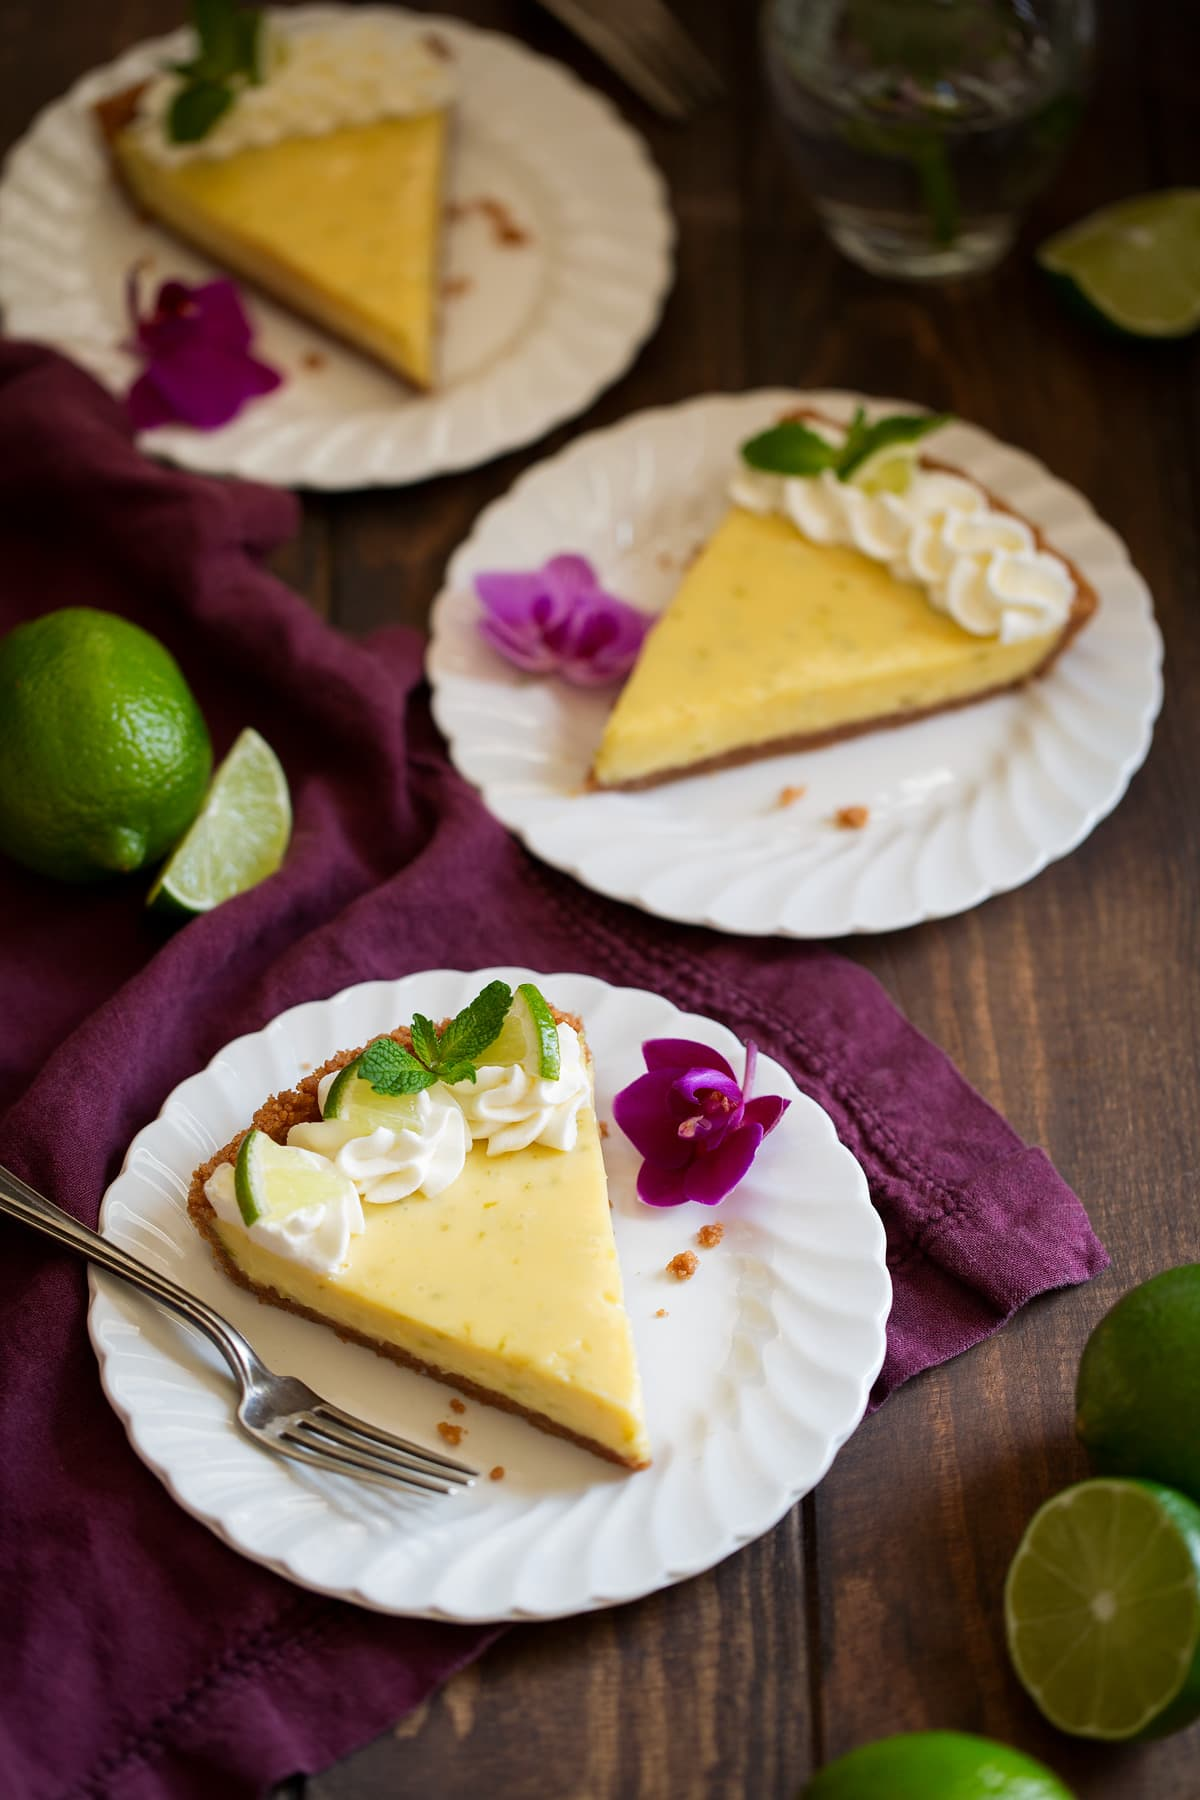 Three slices of key lime pie on white scalloped dessert plates set over a maroon linen napkin. Plates are decorated with purple orchids.